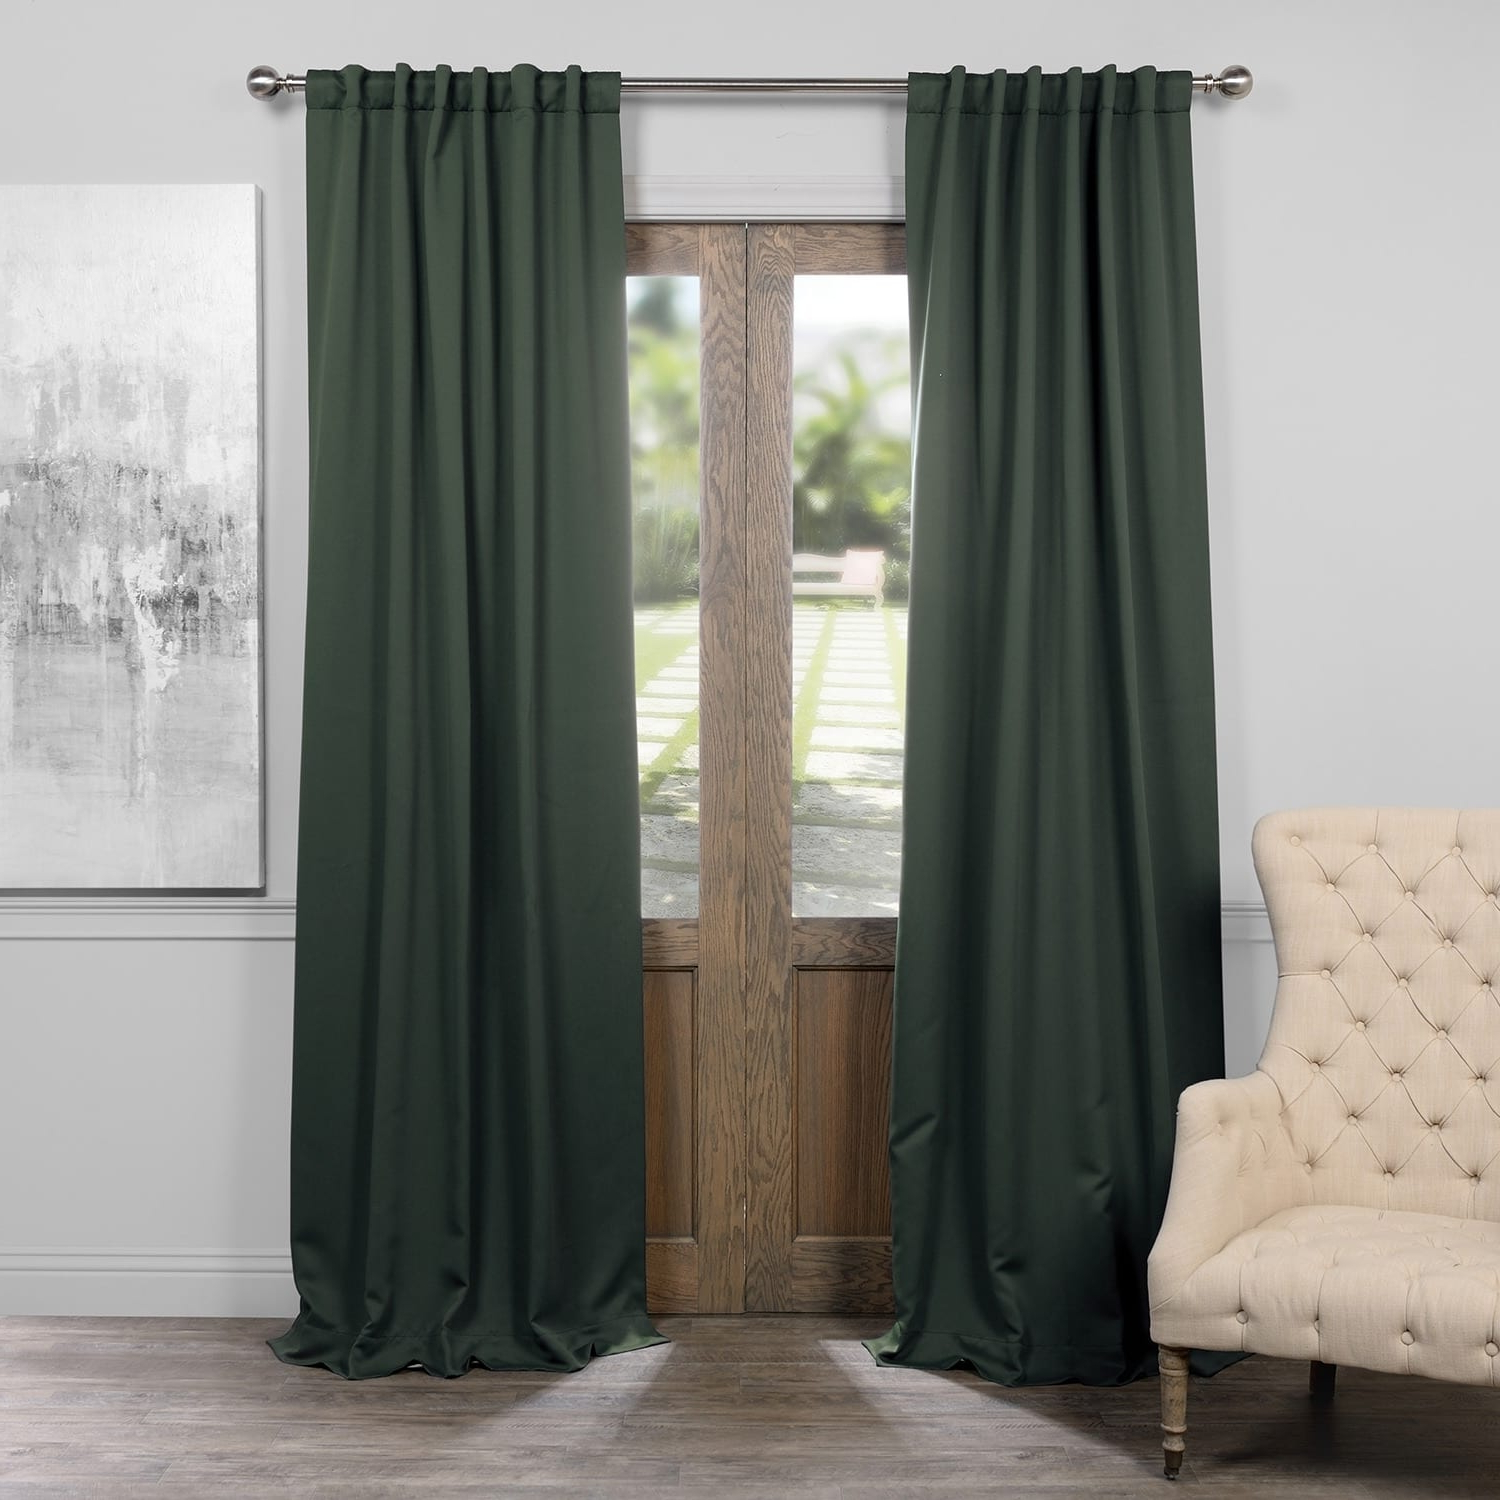 Exclusive Fabrics Thermal Insulated Solid Blackout 120 Inch Curtain Panel Pair – 50 X 120 Pertaining To Newest Solid Thermal Insulated Blackout Curtain Panel Pairs (View 12 of 20)